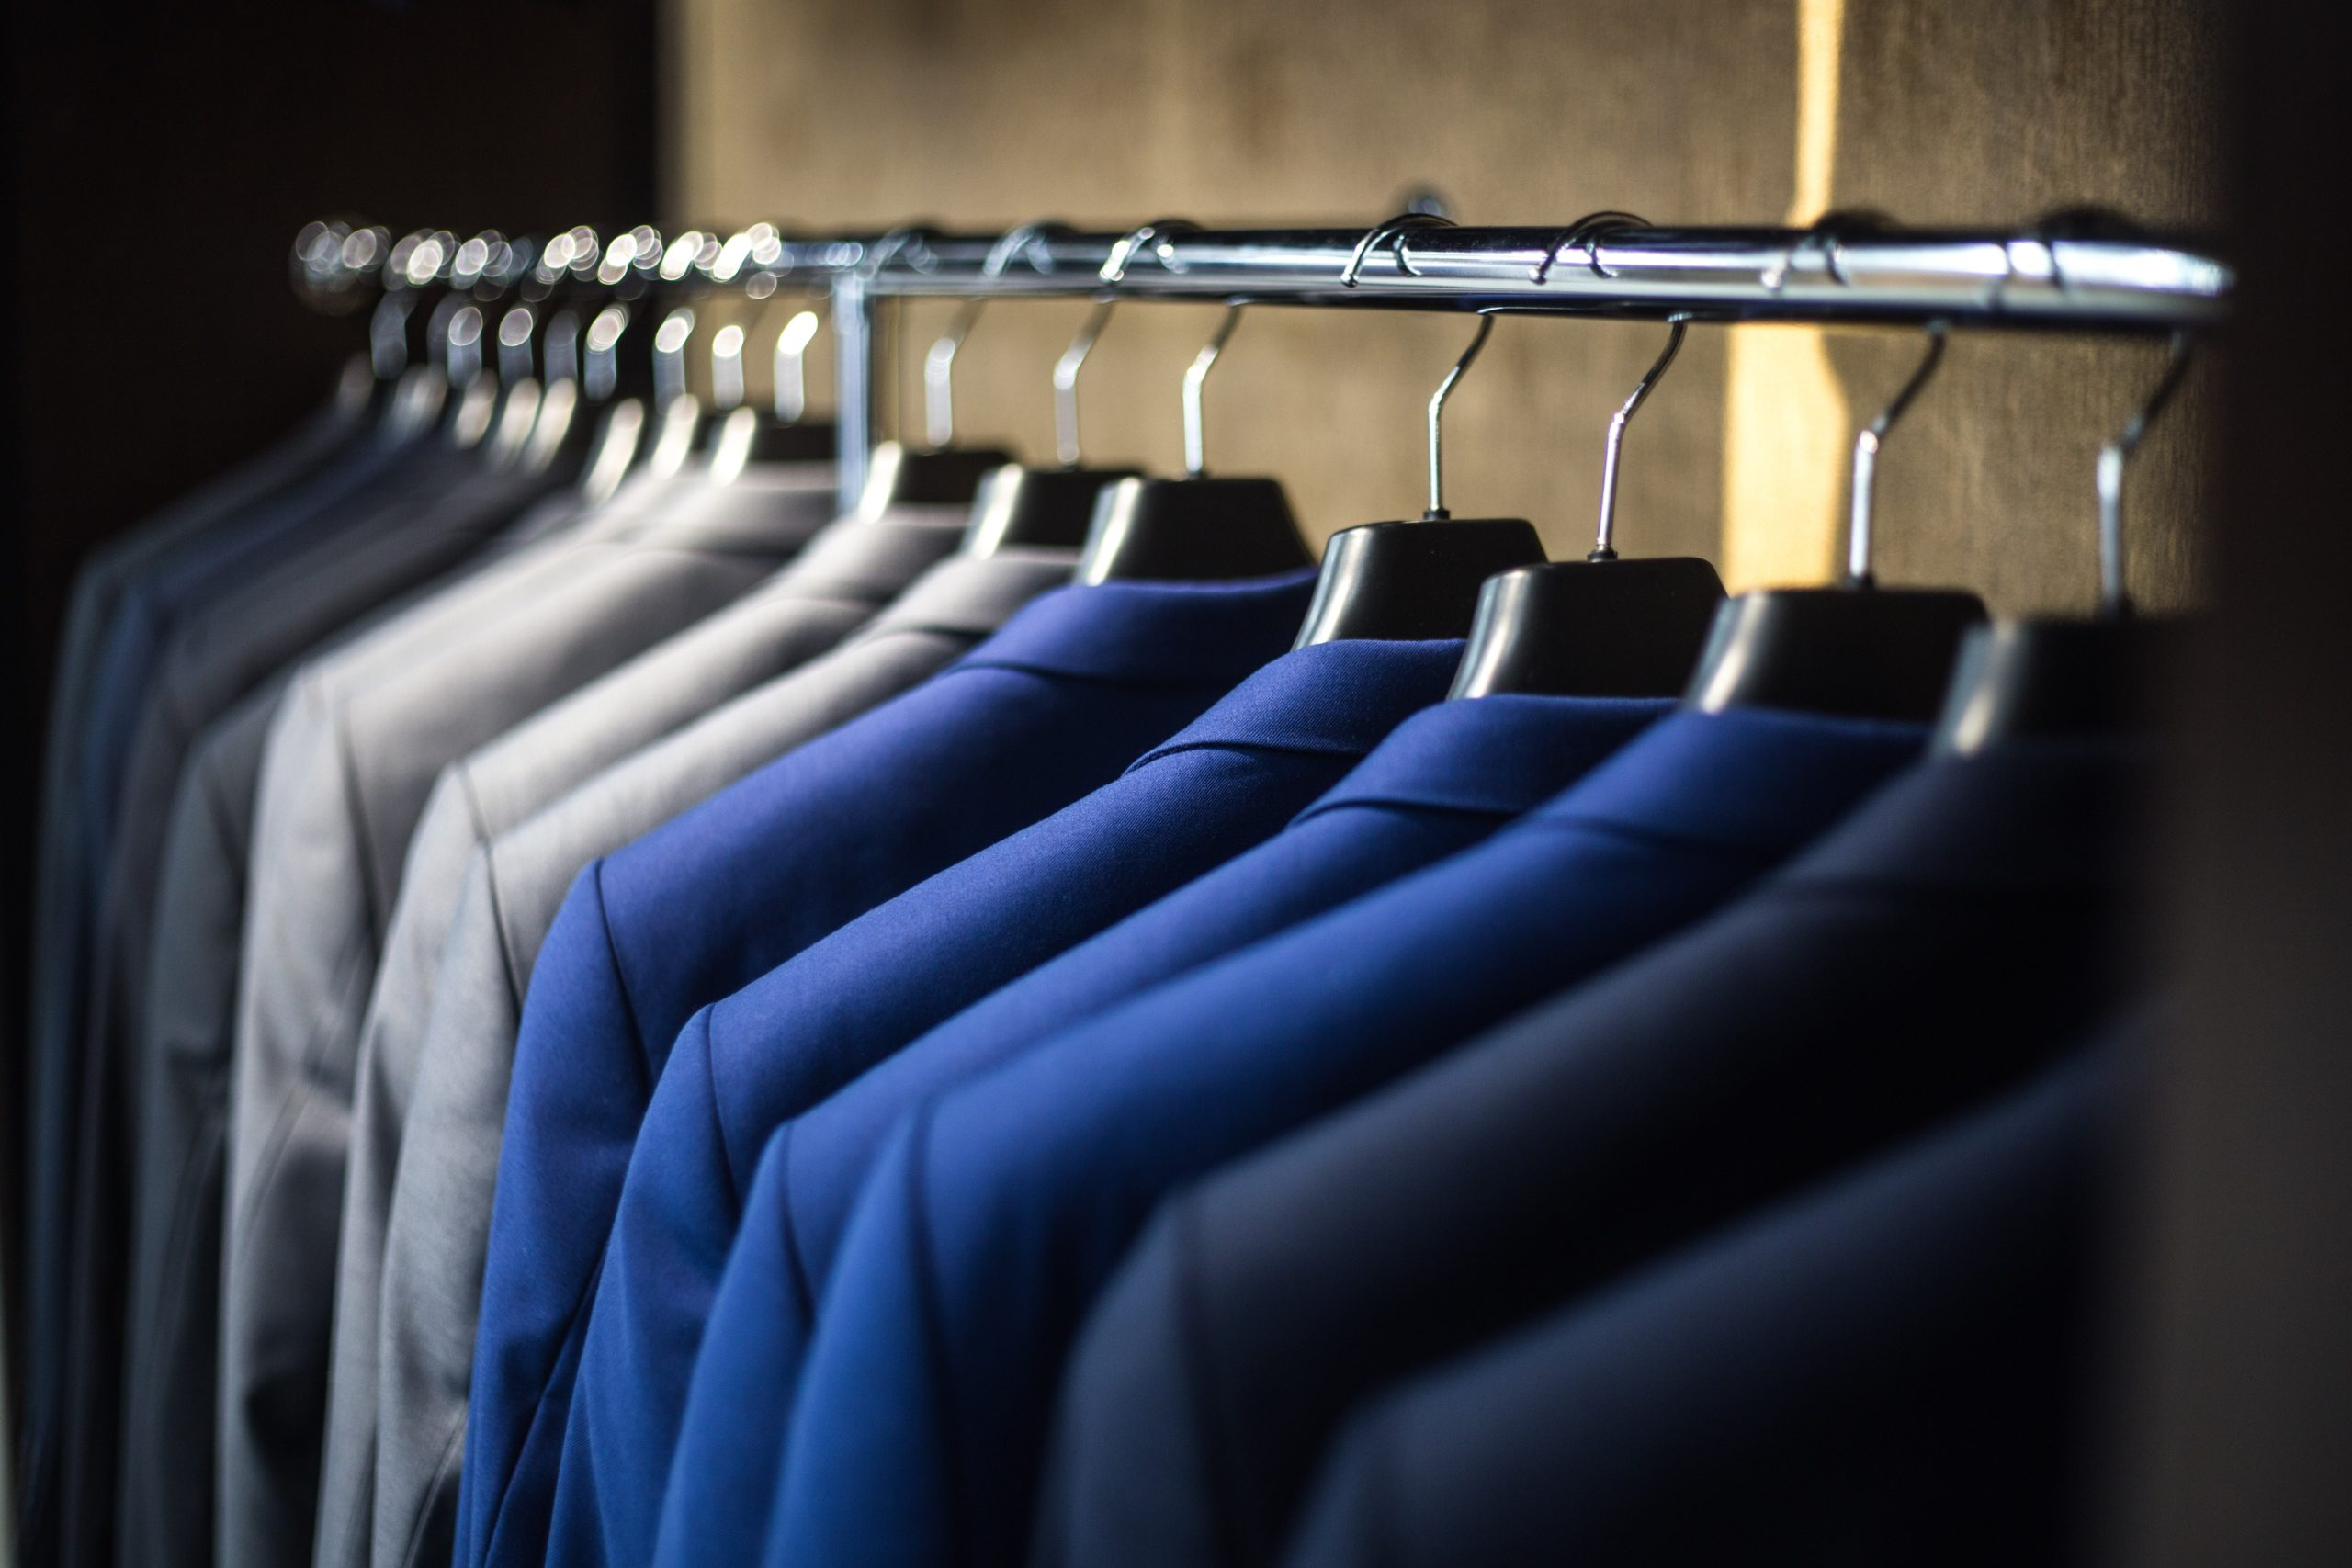 Row of blue and light gray suits hanging on a rack